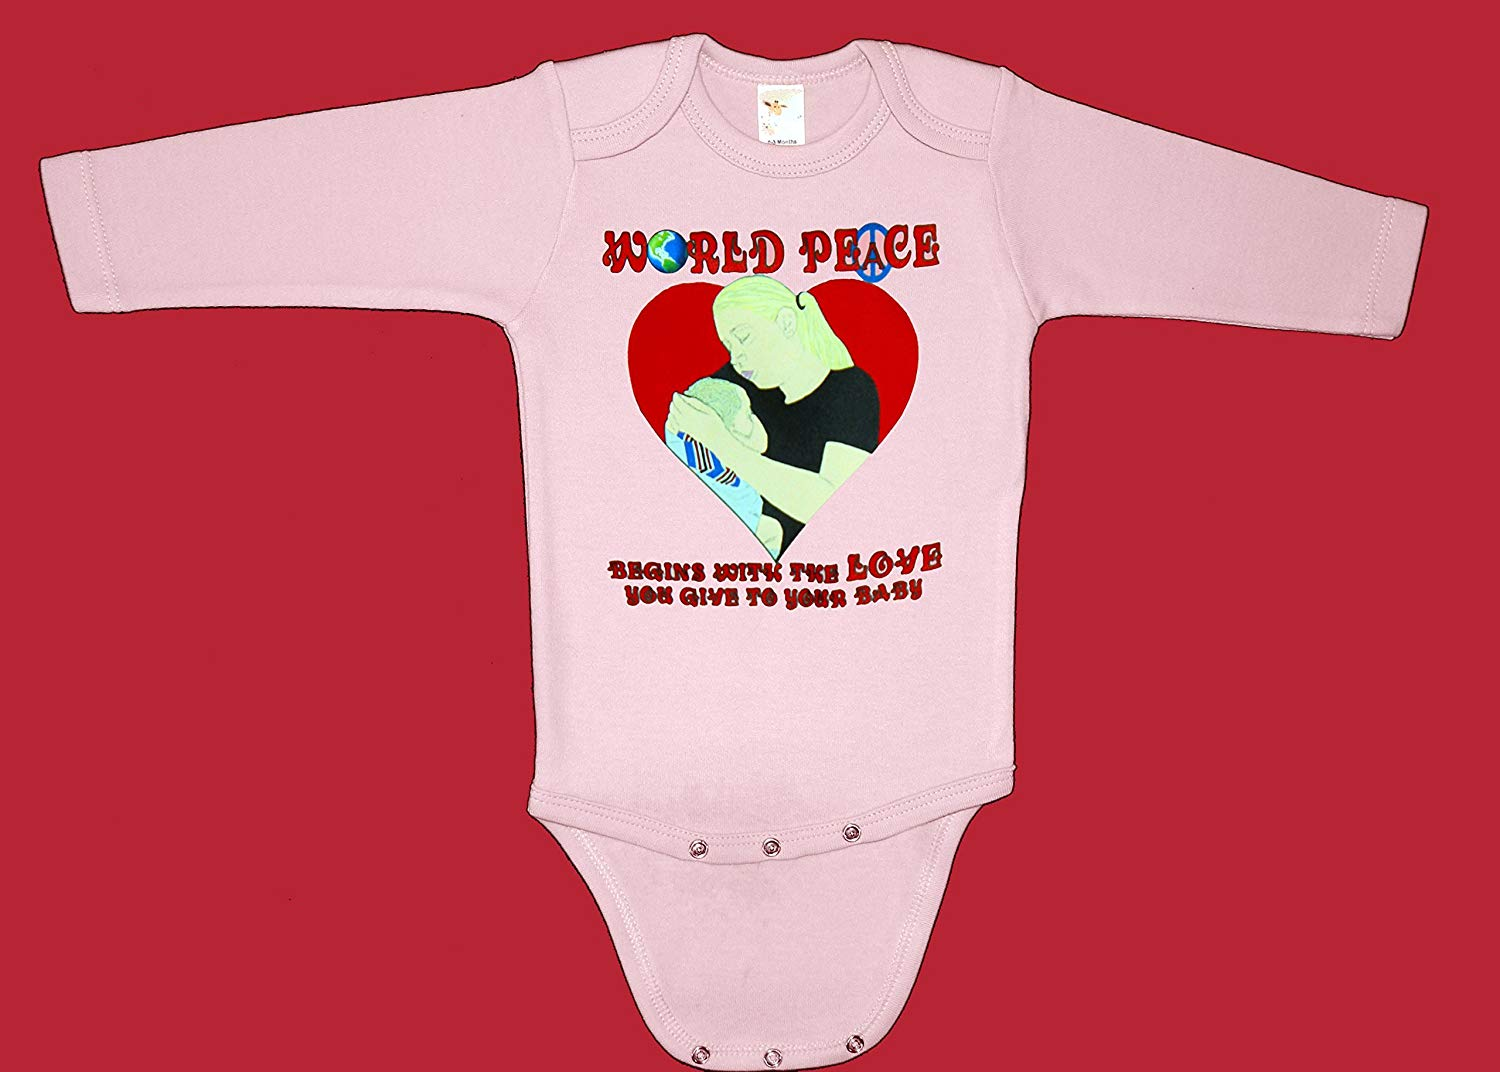 Get Quotations  C B World Peace Begins With The Love You Give To Your Baby Long Sleeve Baby Bodysuit